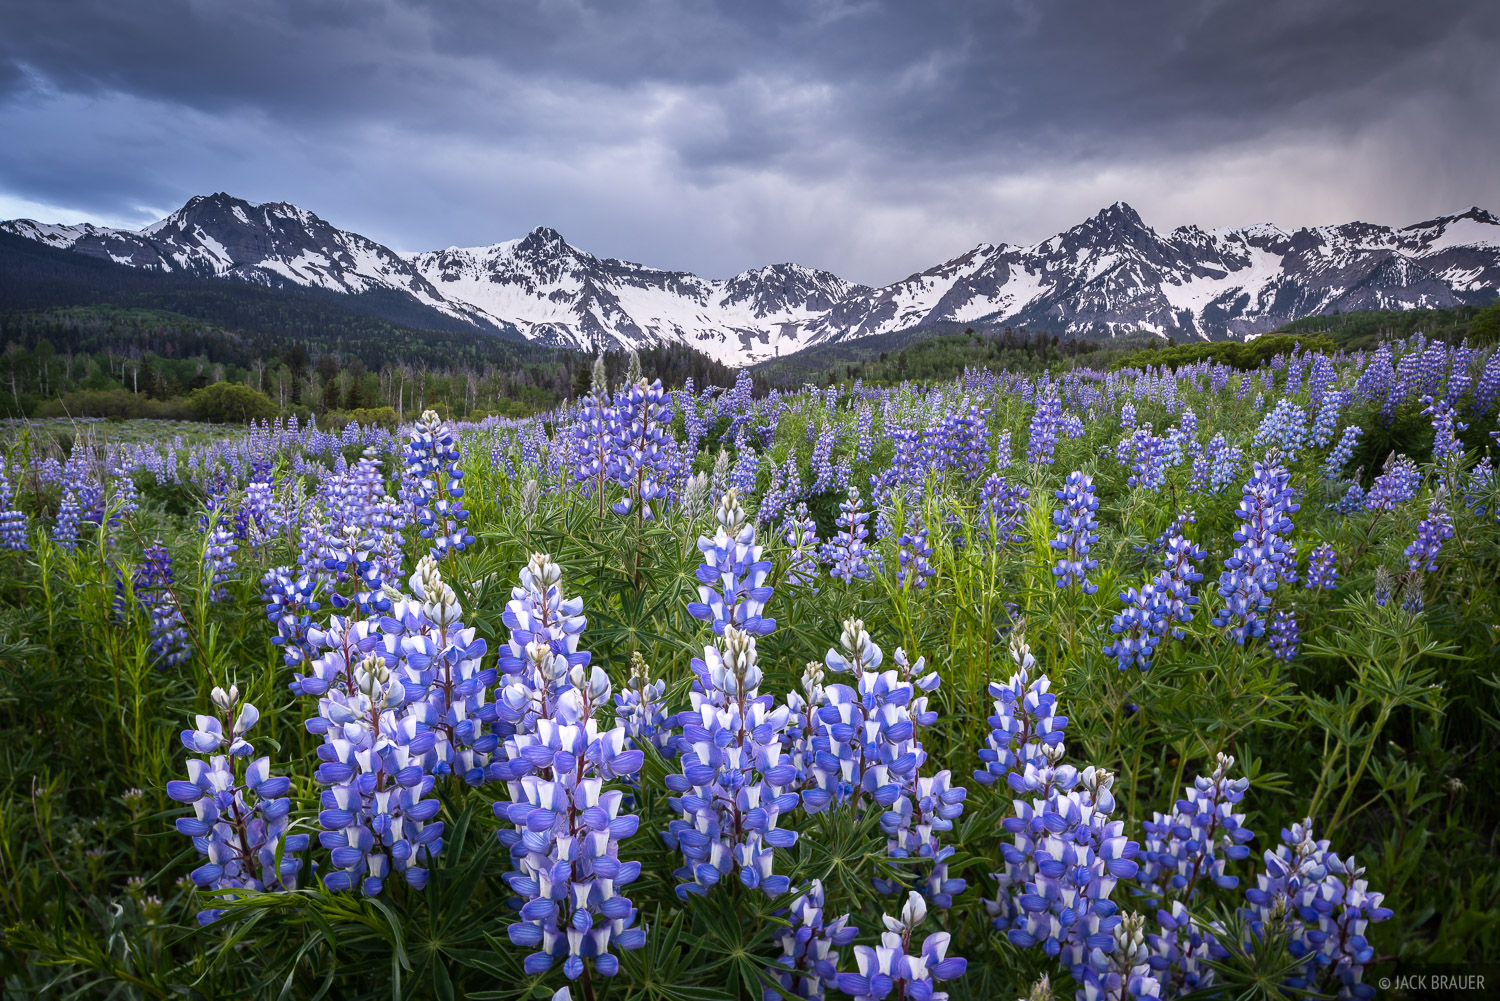 Mears Peak, the Sneffels Range, and a field of lupine wildflowers under a stormy sky in June.